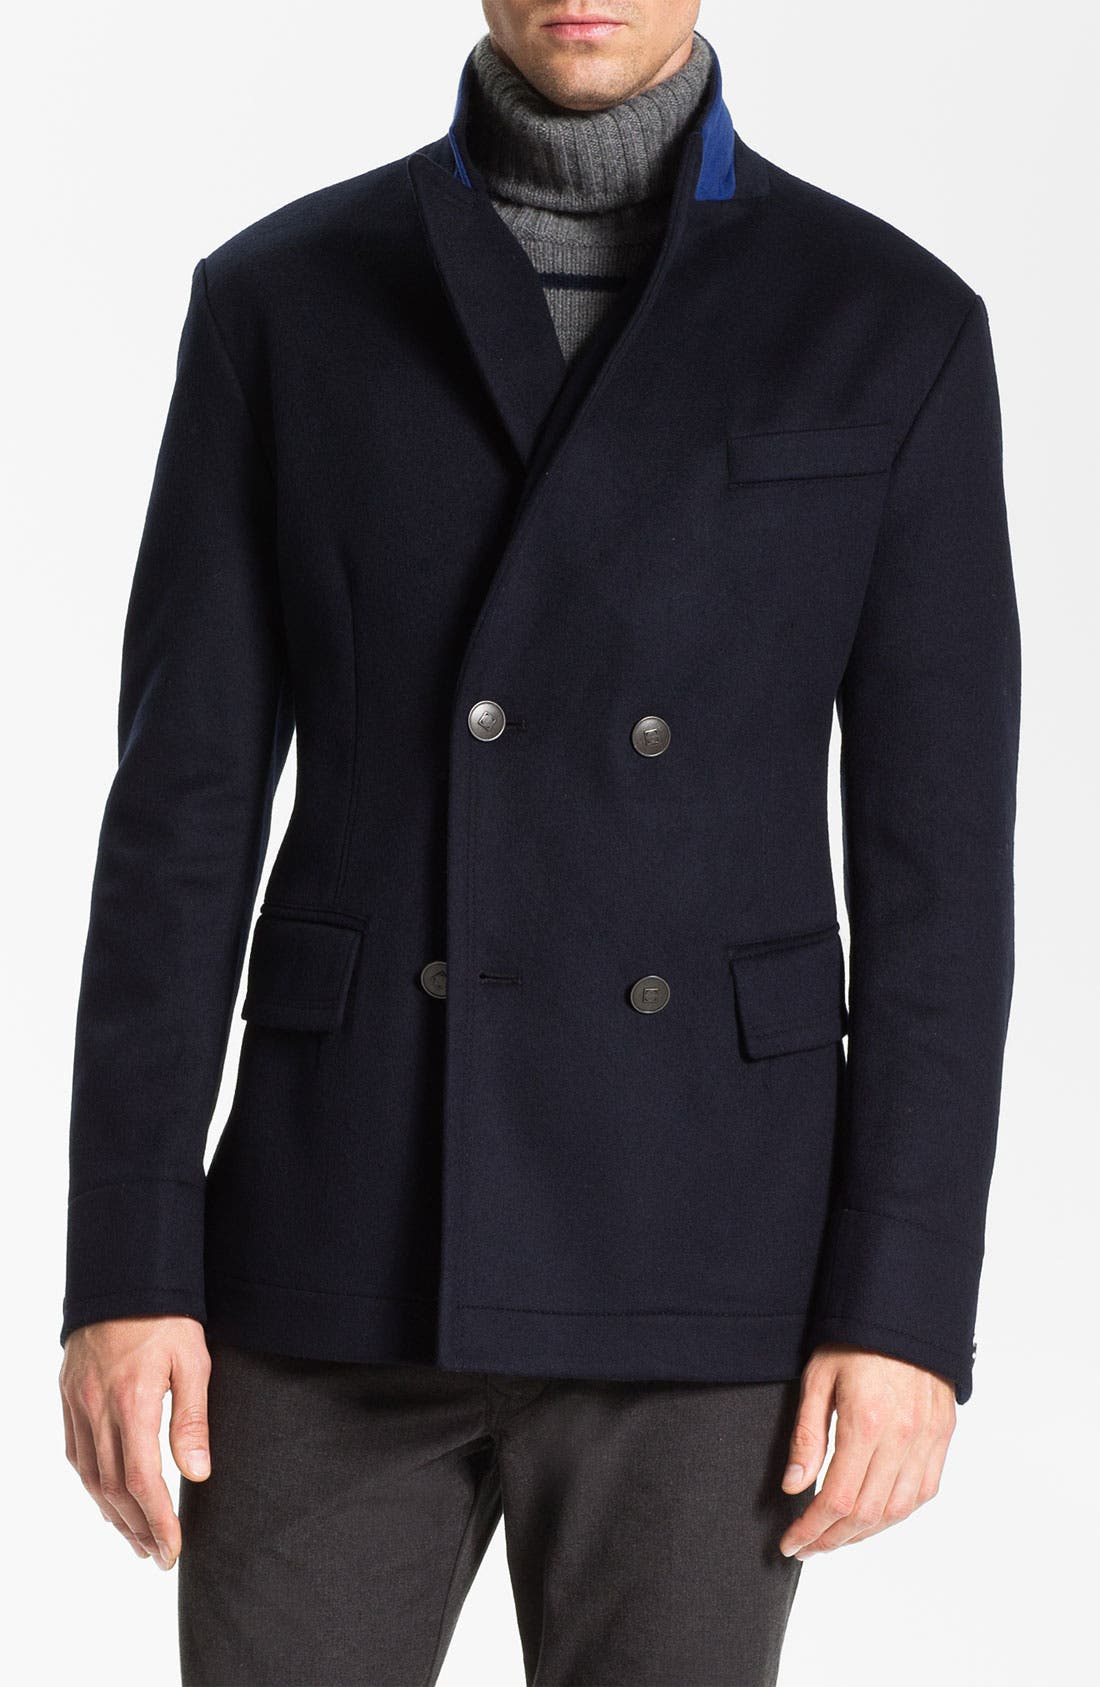 Main Image - BOSS Black 'Clynt' Wool & Cashmere Blend Jacket